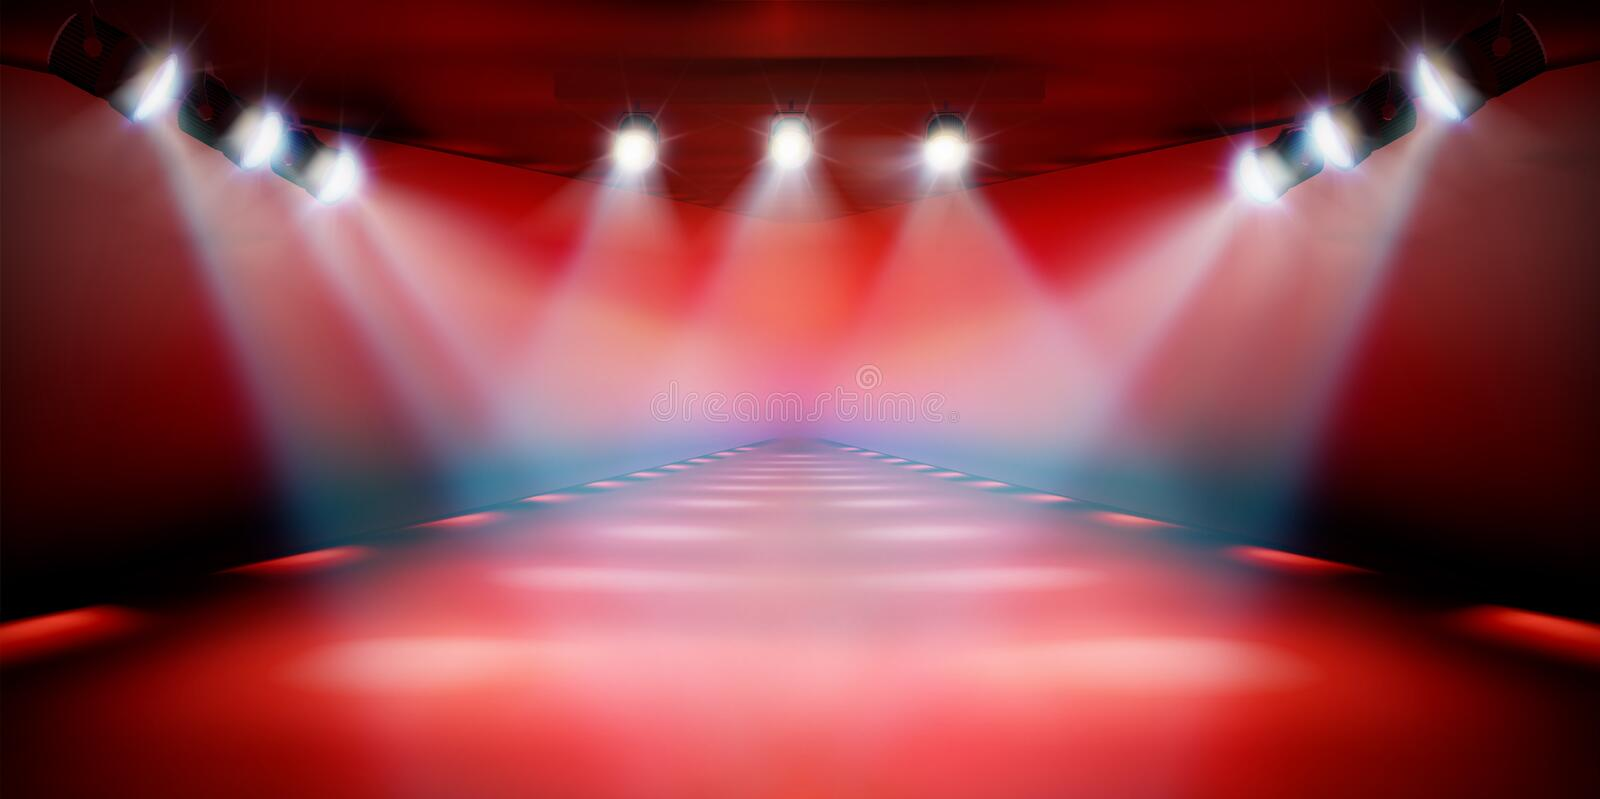 Stage podium during the show. Red background. Vector illustration. royalty free illustration